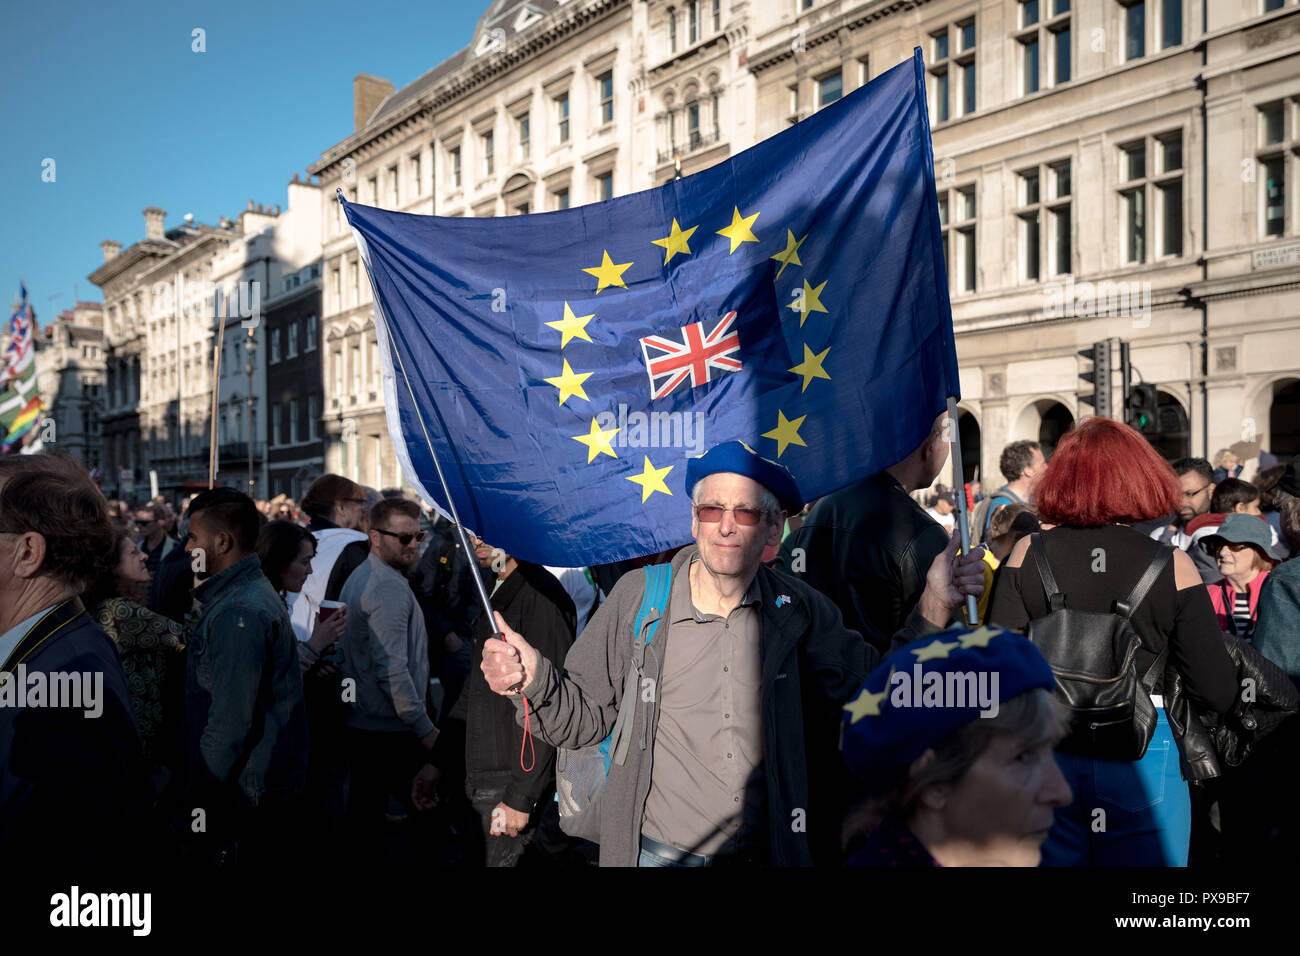 London, UK. 20th October, 2018. People's Vote March. Hundreds of thousands take part in the People's Vote March for the Future to demand a vote on the final Brexit deal. Credit: Guy Corbishley / Alamy Live News - Stock Image